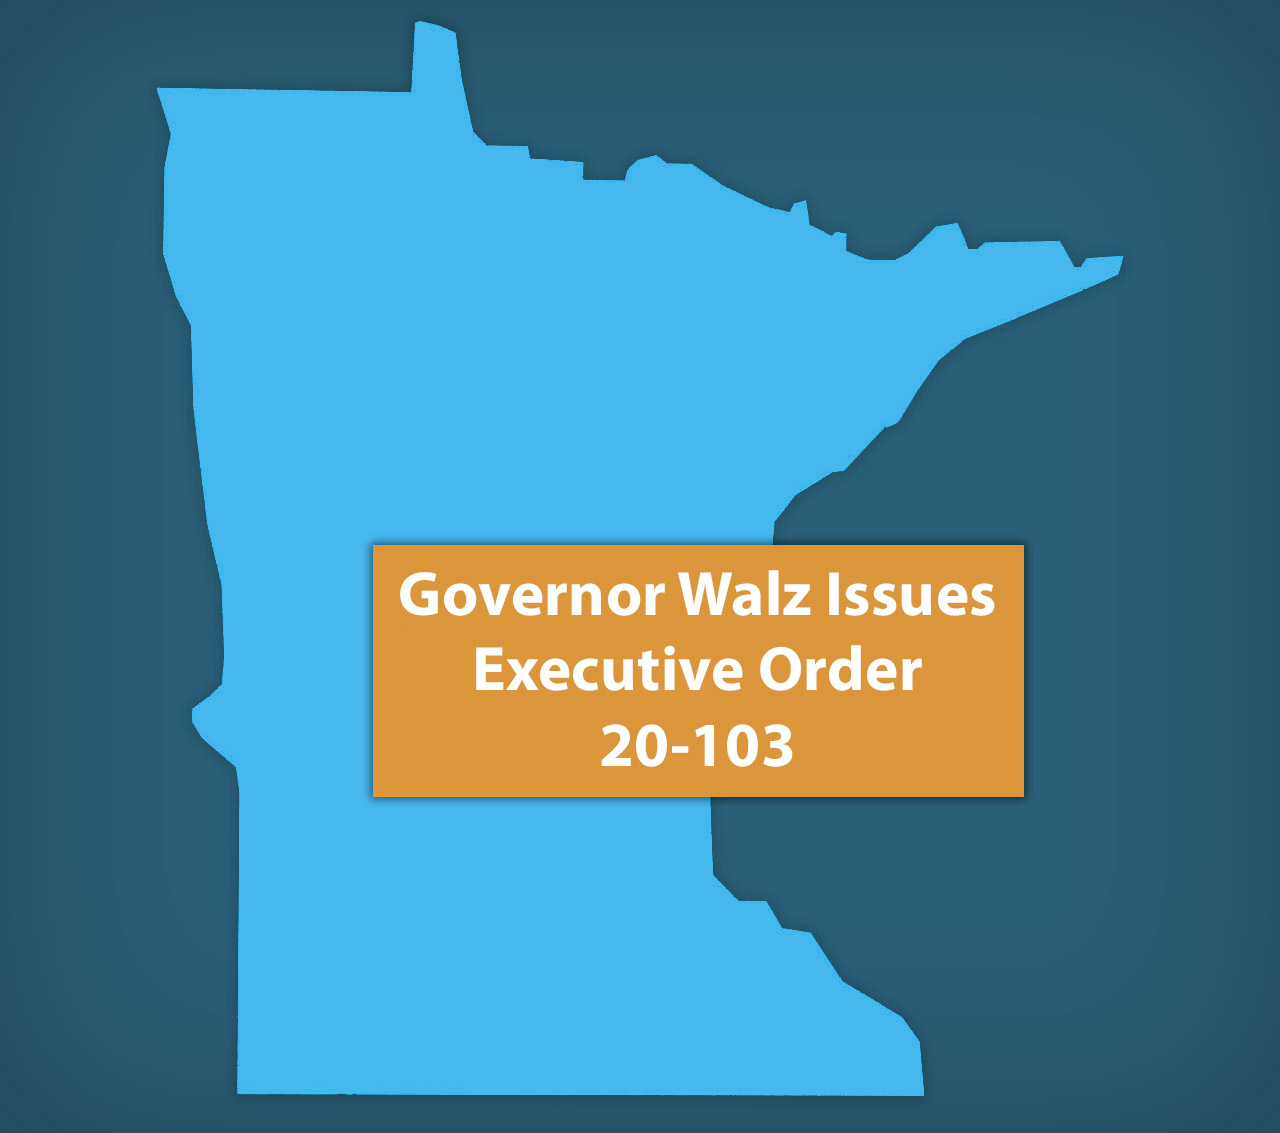 Governor Walz Issues Executive Order 20-103